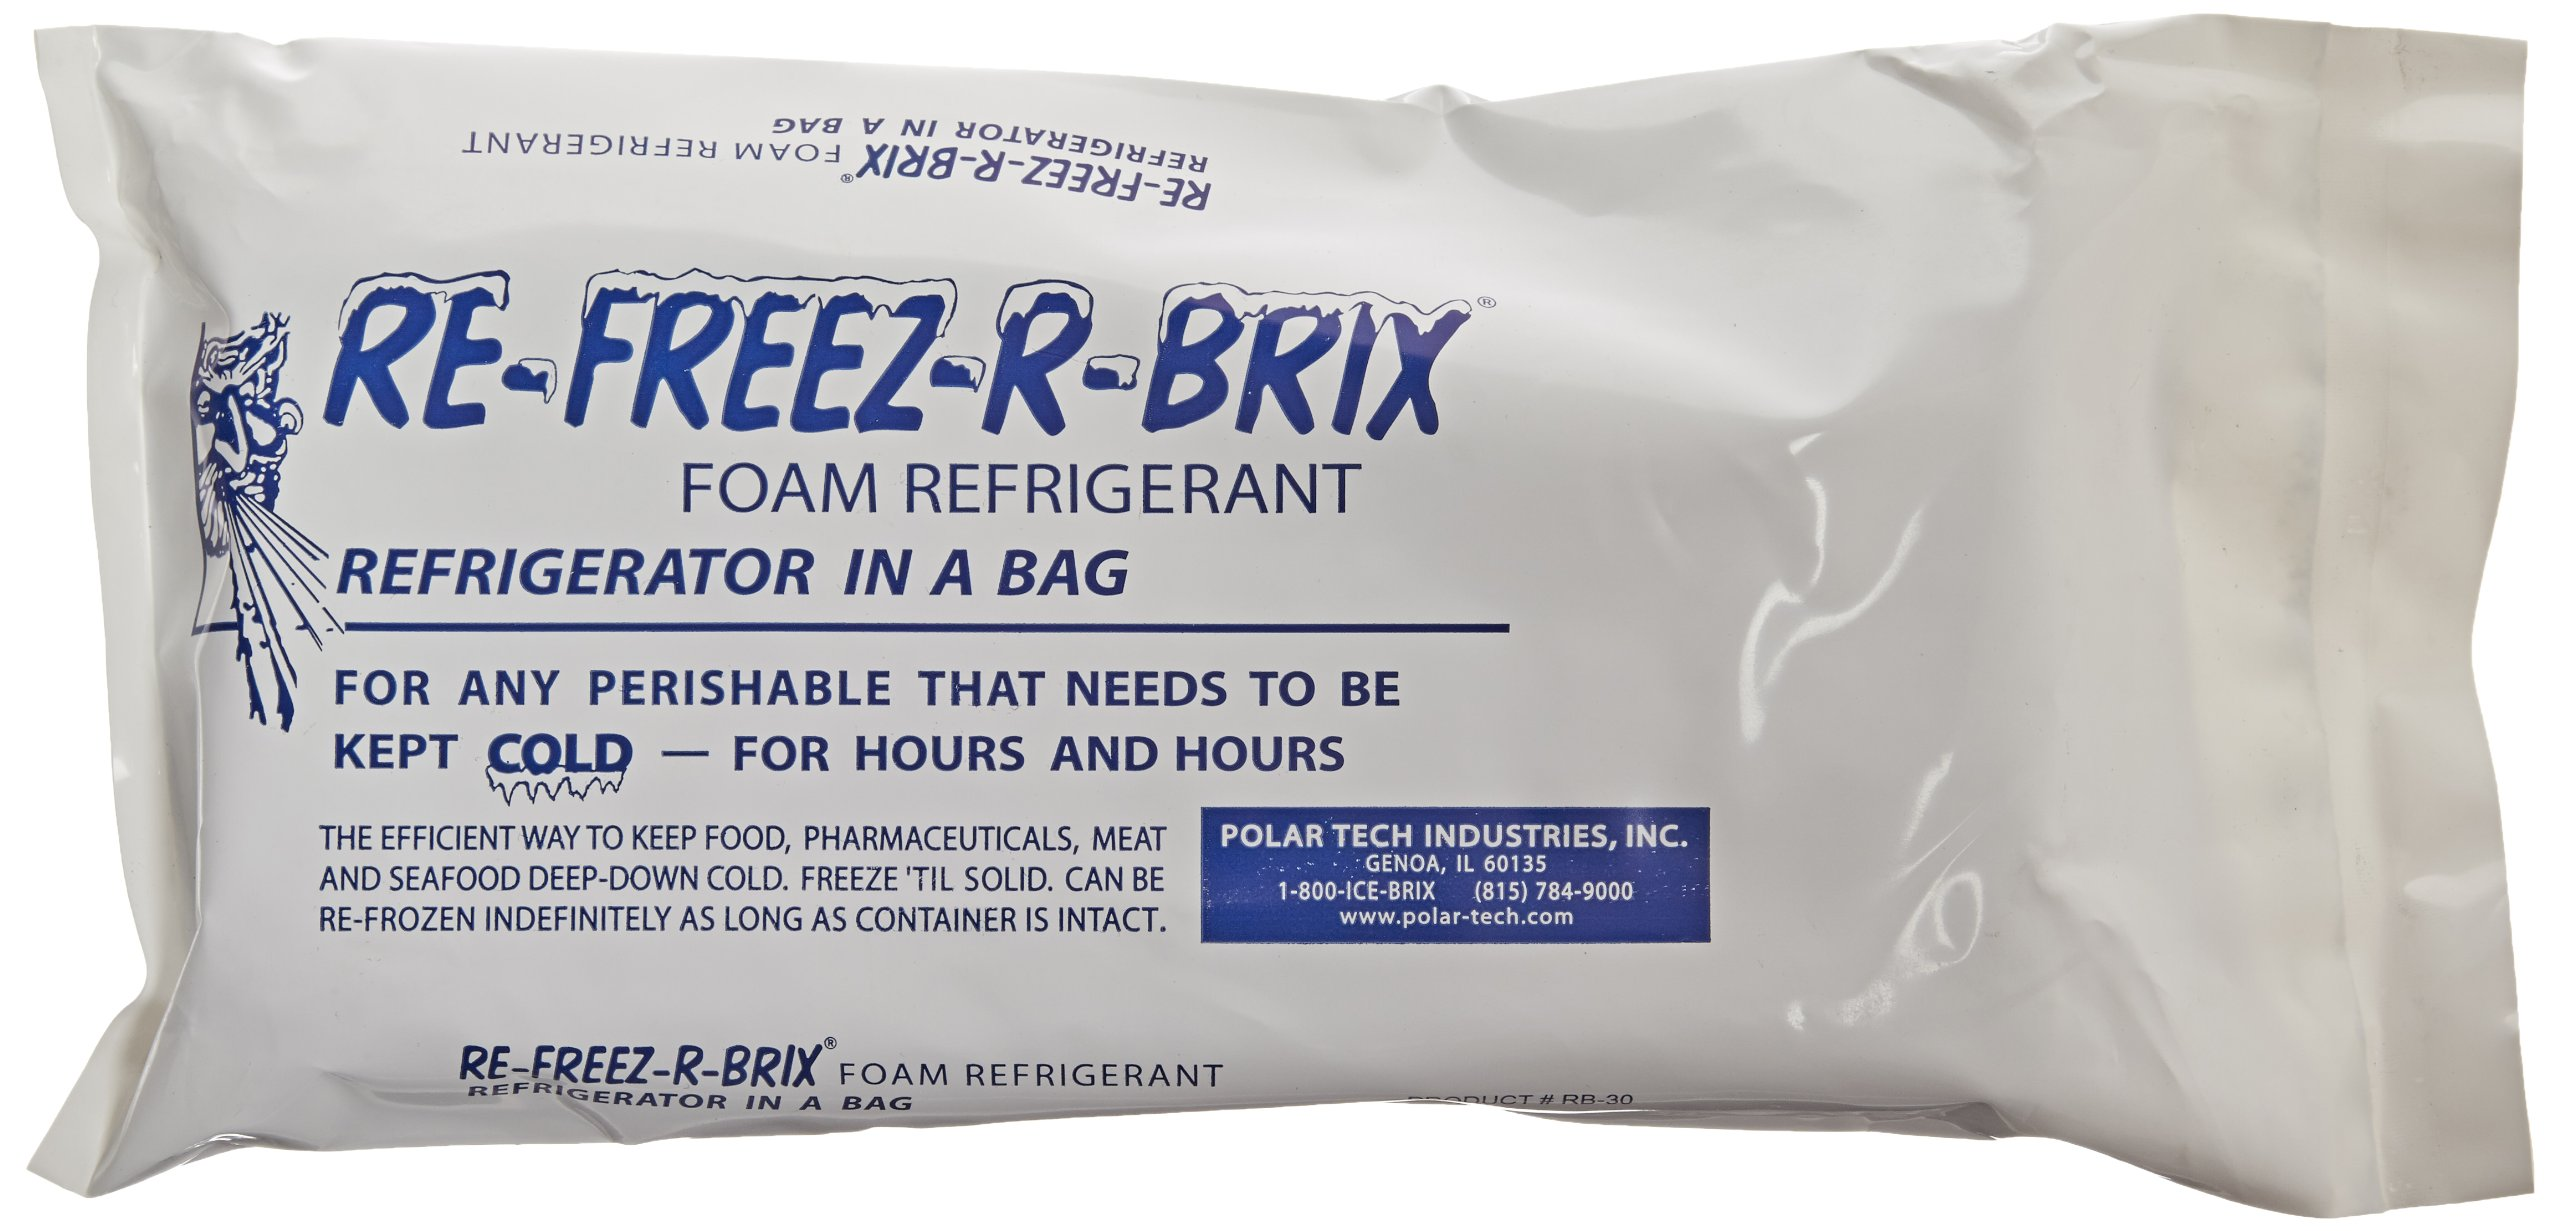 Polar Tech RE-FREEZ-R-BRIX RB30 Foam Refrigerant Packs, 31oz Capacity (Case of 6)